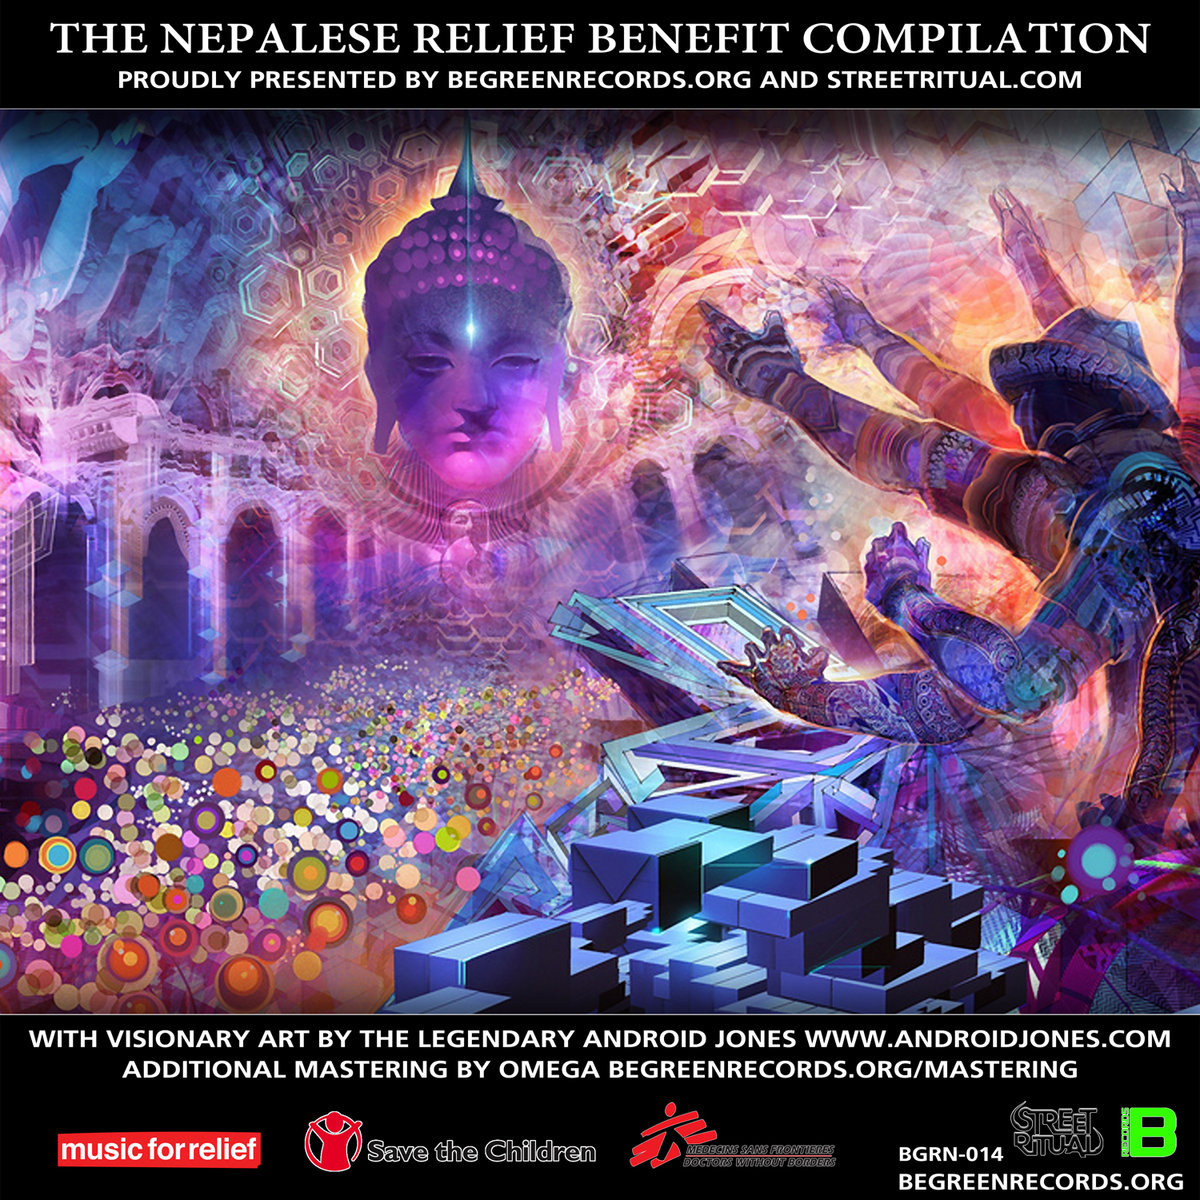 Nadis Warriors - Nashira @ 'Various Artists - The Nepalese Relief Benefit Compilation' album (bass, electronic)